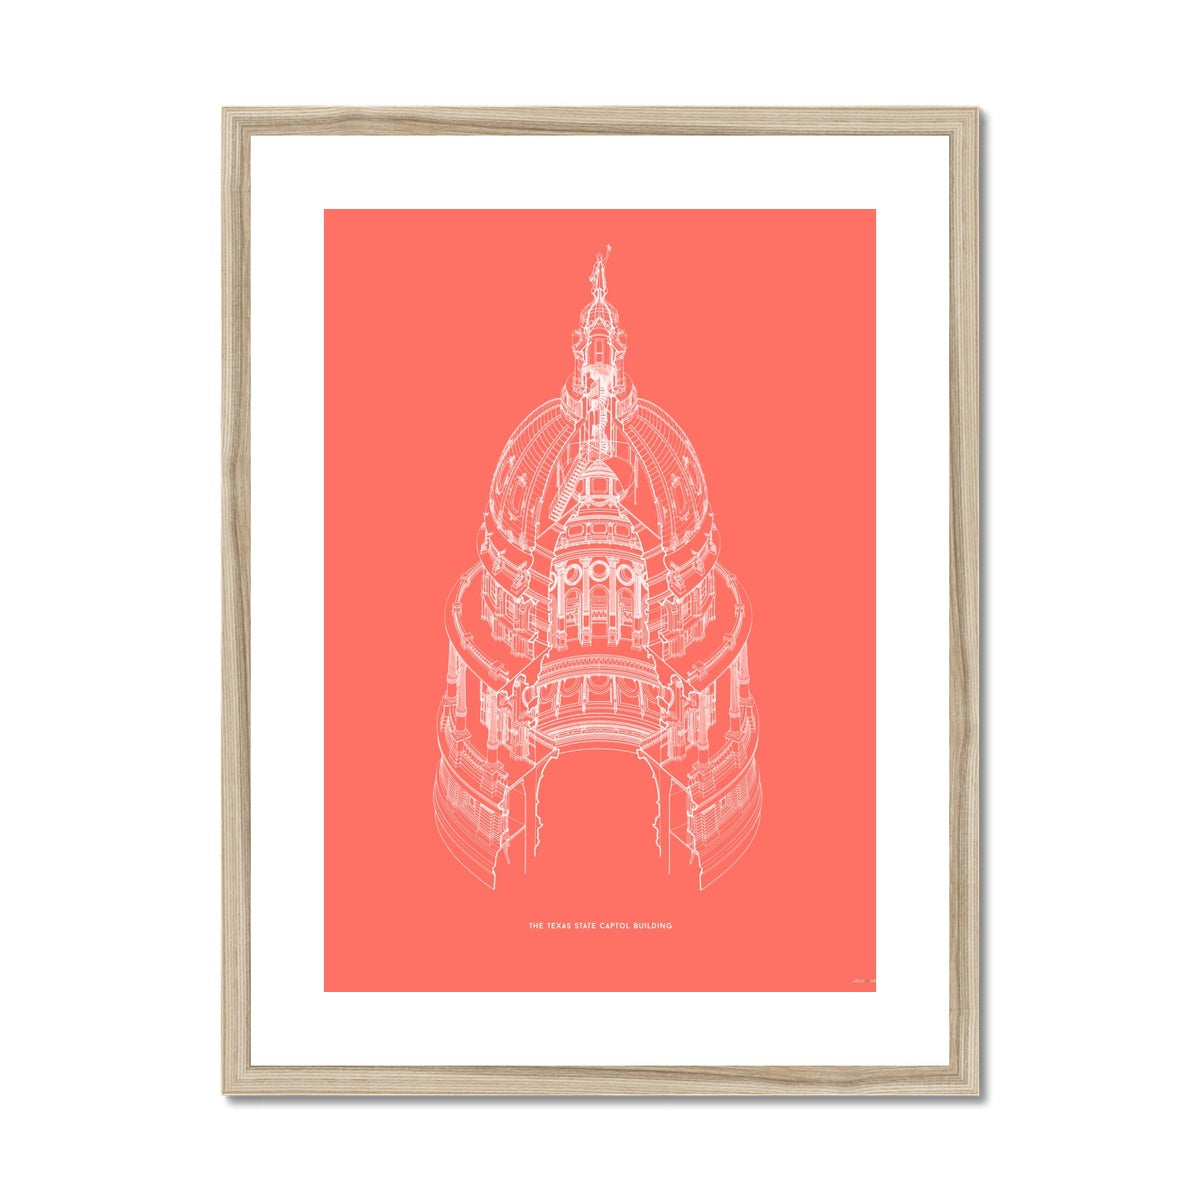 The Texas State Capitol Building - Dome Axonometric Cross Section - Red -  Framed & Mounted Print